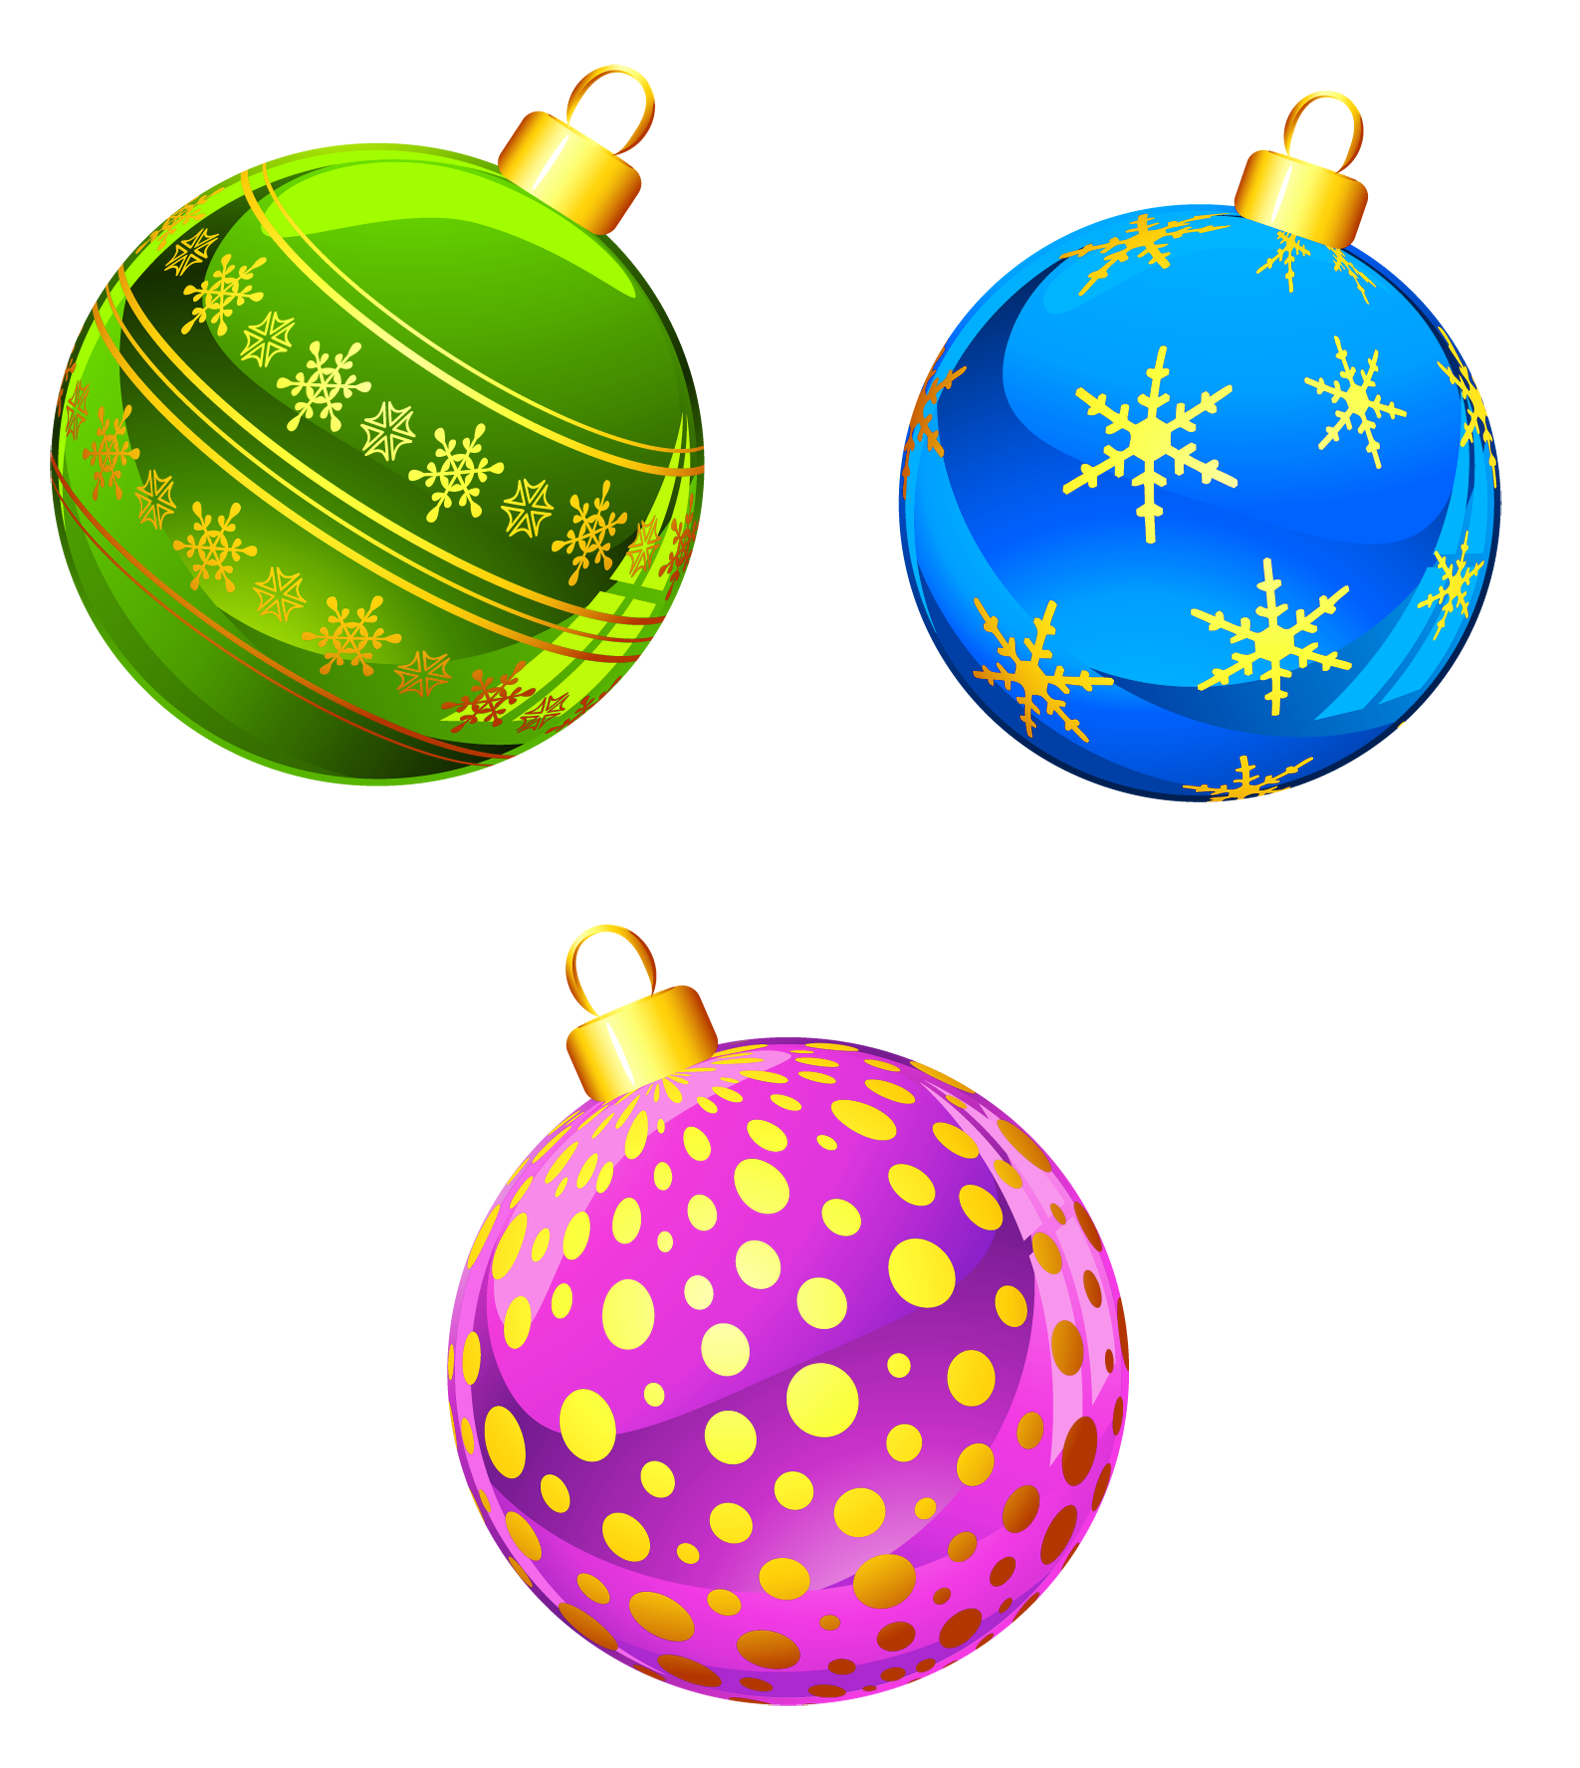 Christmas Ornaments clipart #2, Download drawings